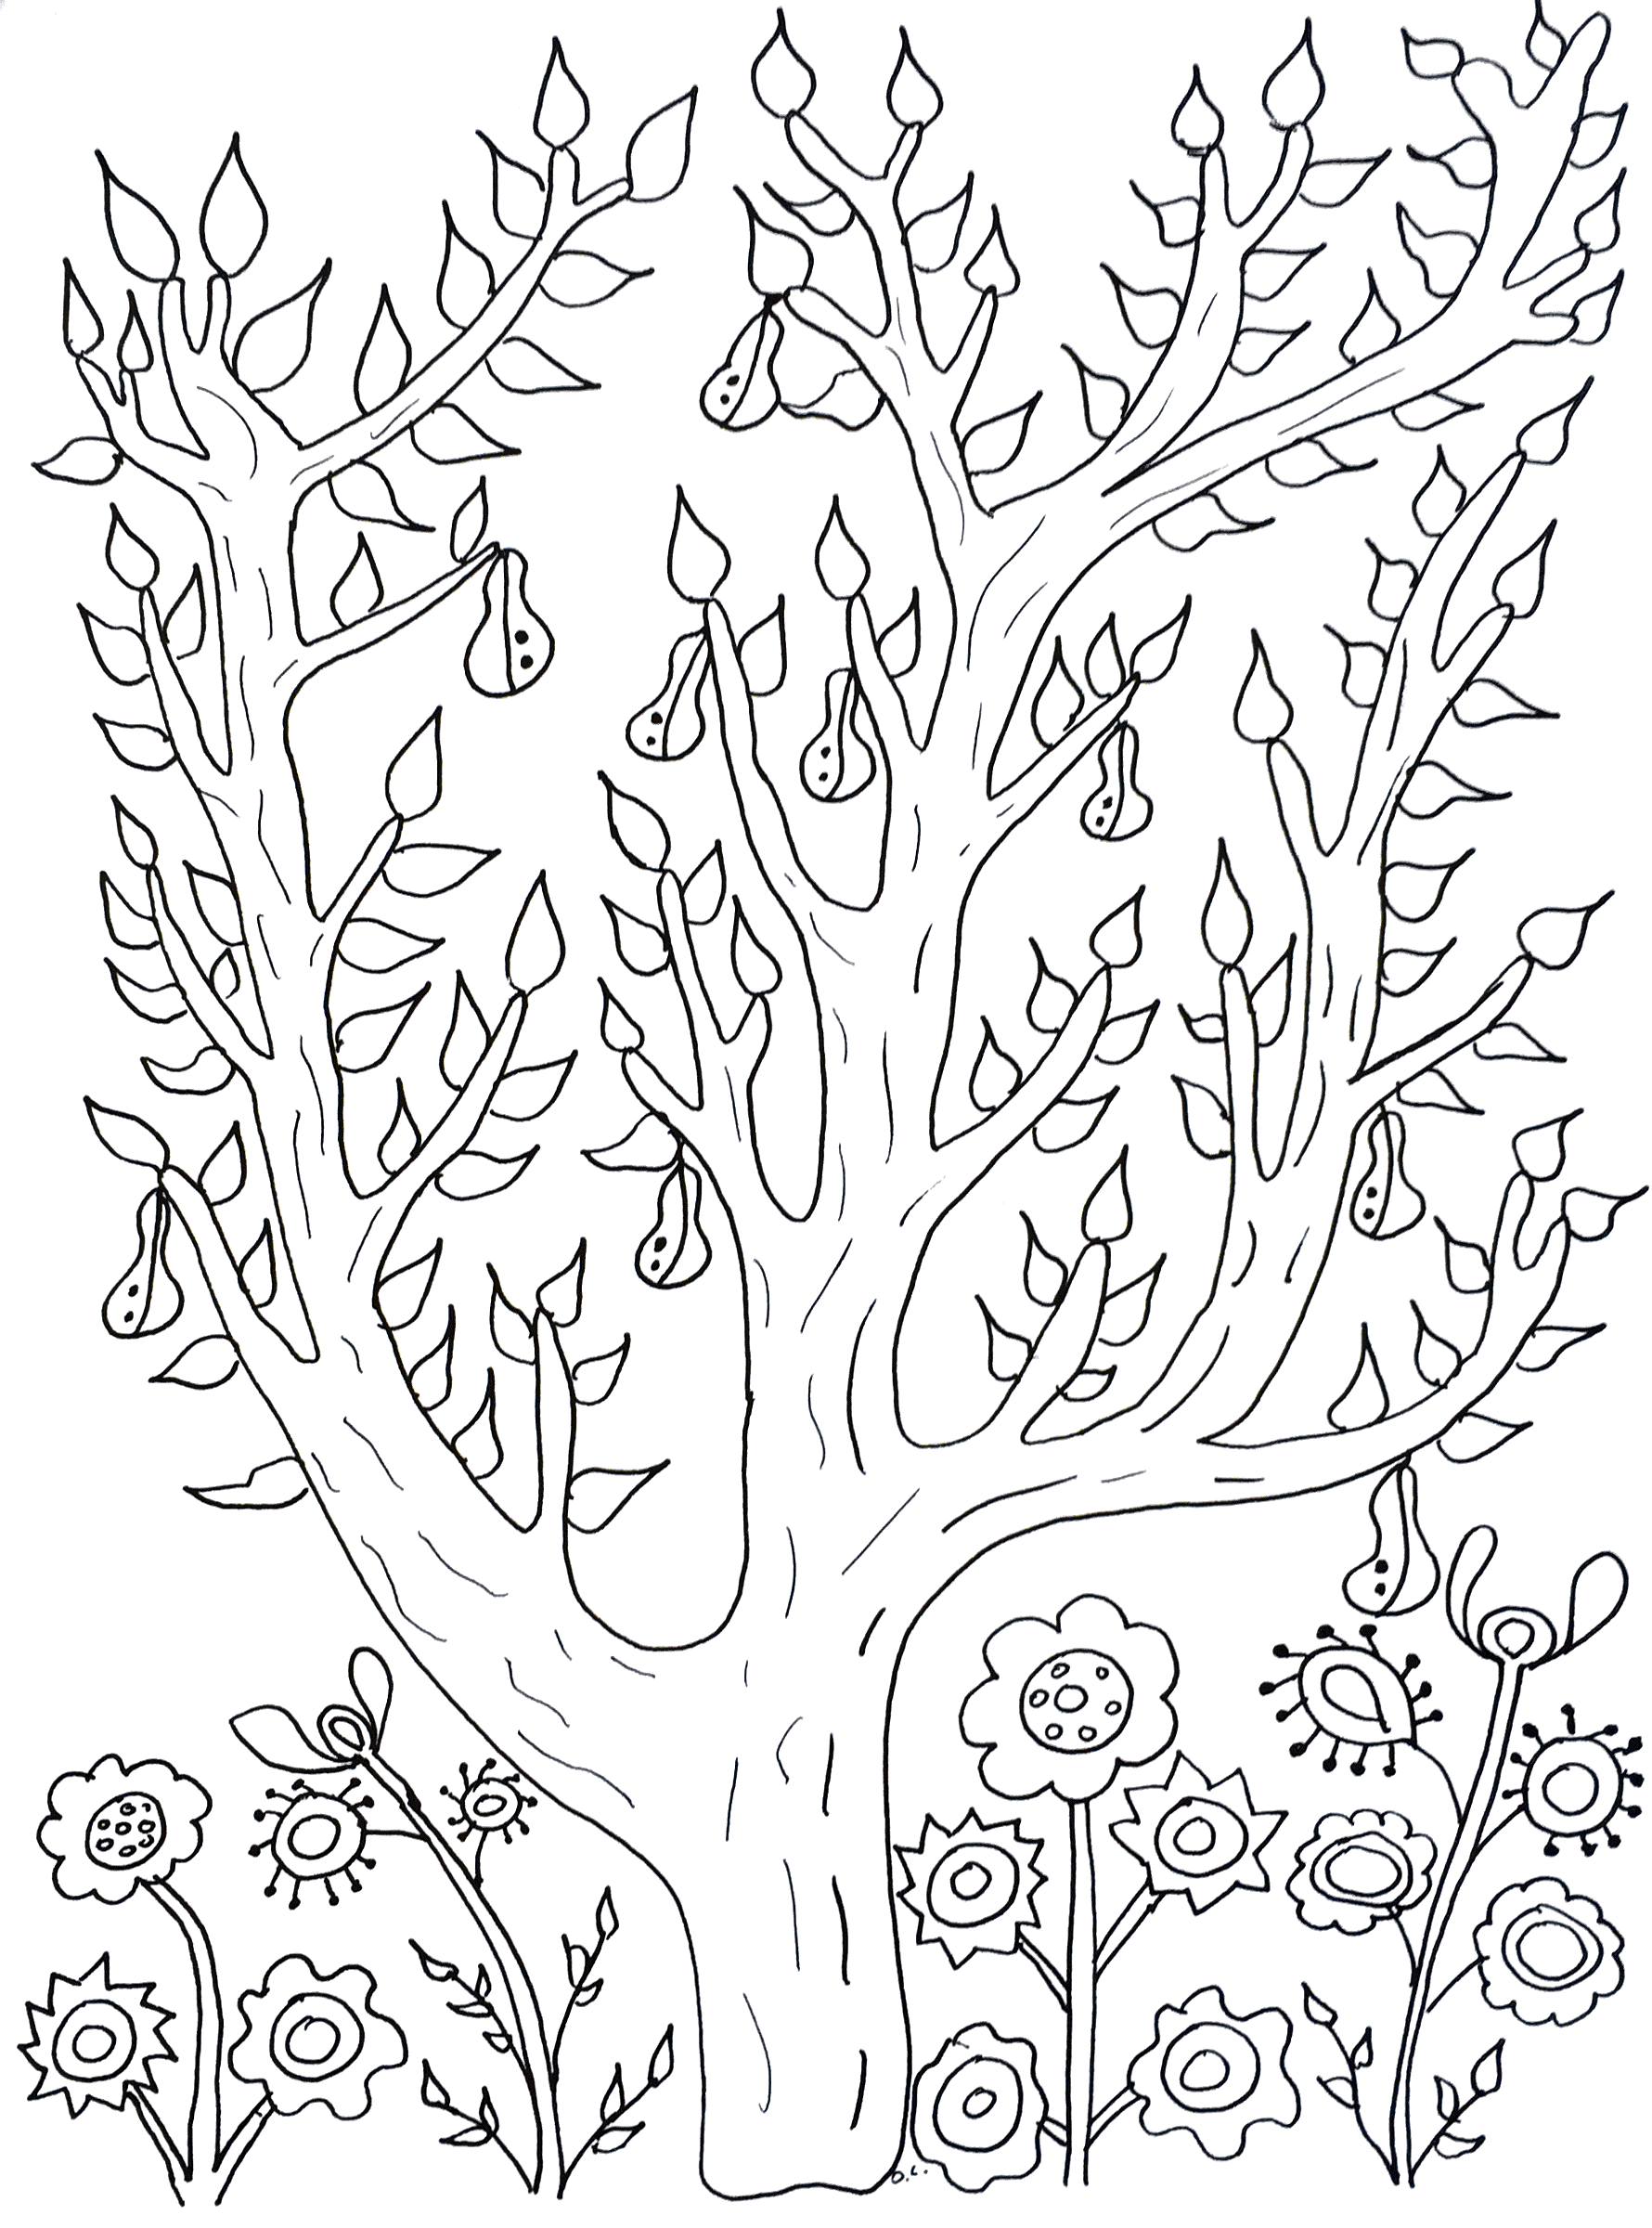 plants and trees coloring pages in cute tree with leaves pears - Tree Leaves Coloring Page